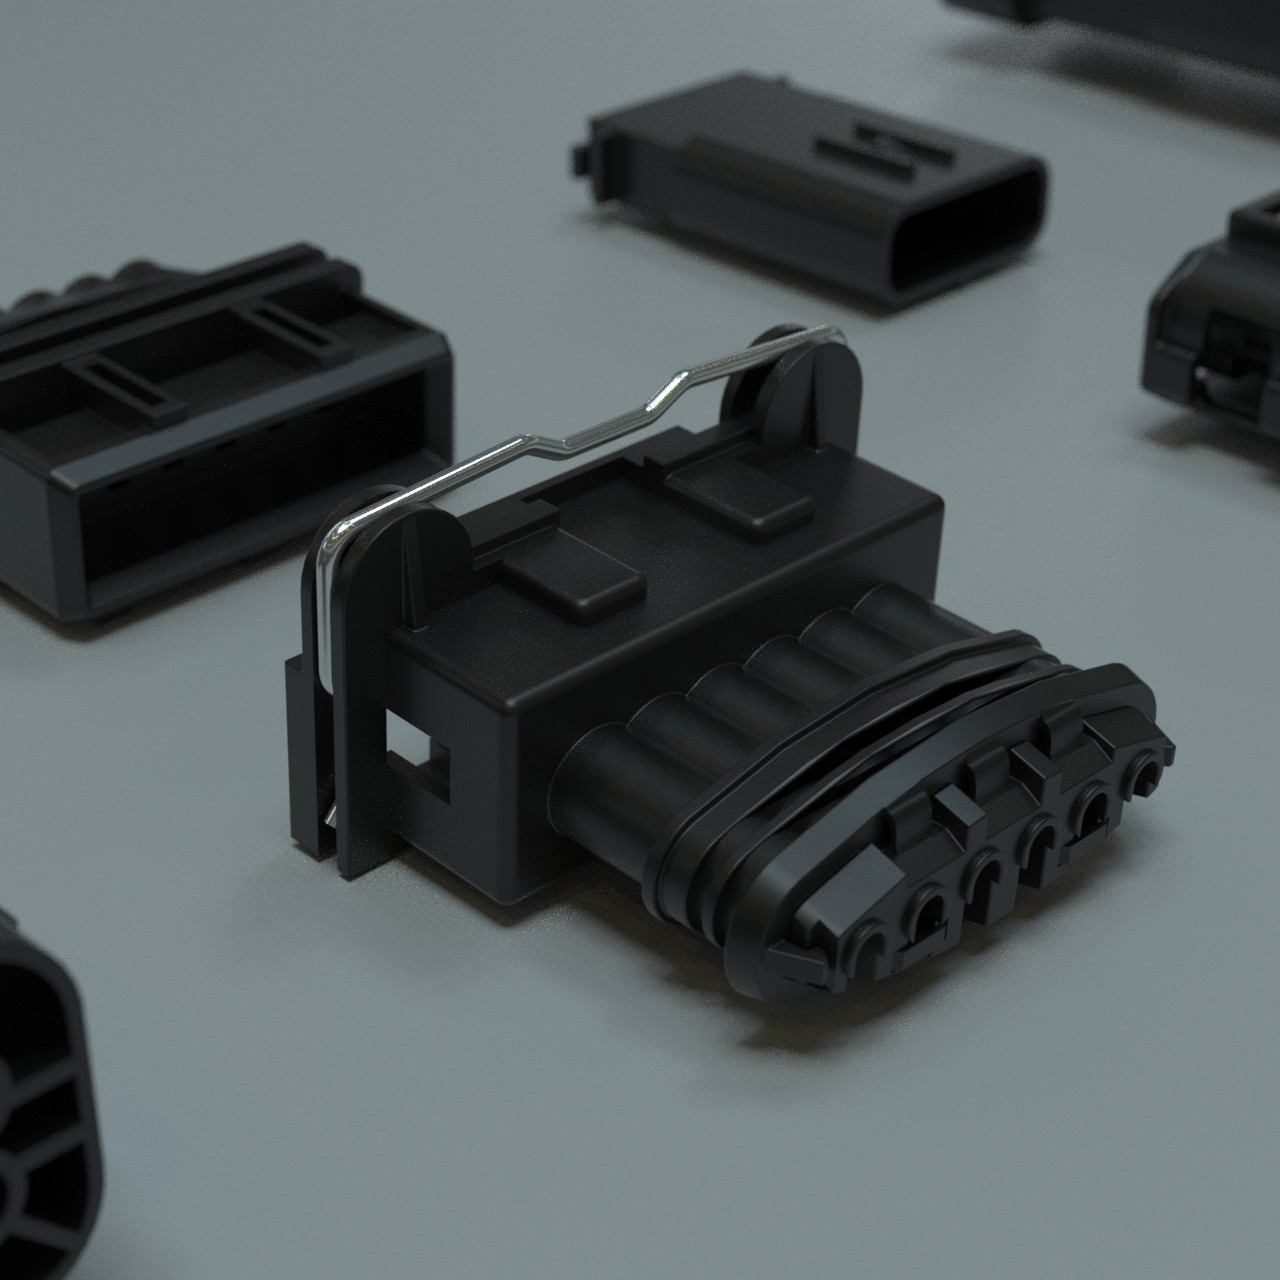 Hard Surface Modeling with CAD - Plastic Sockets